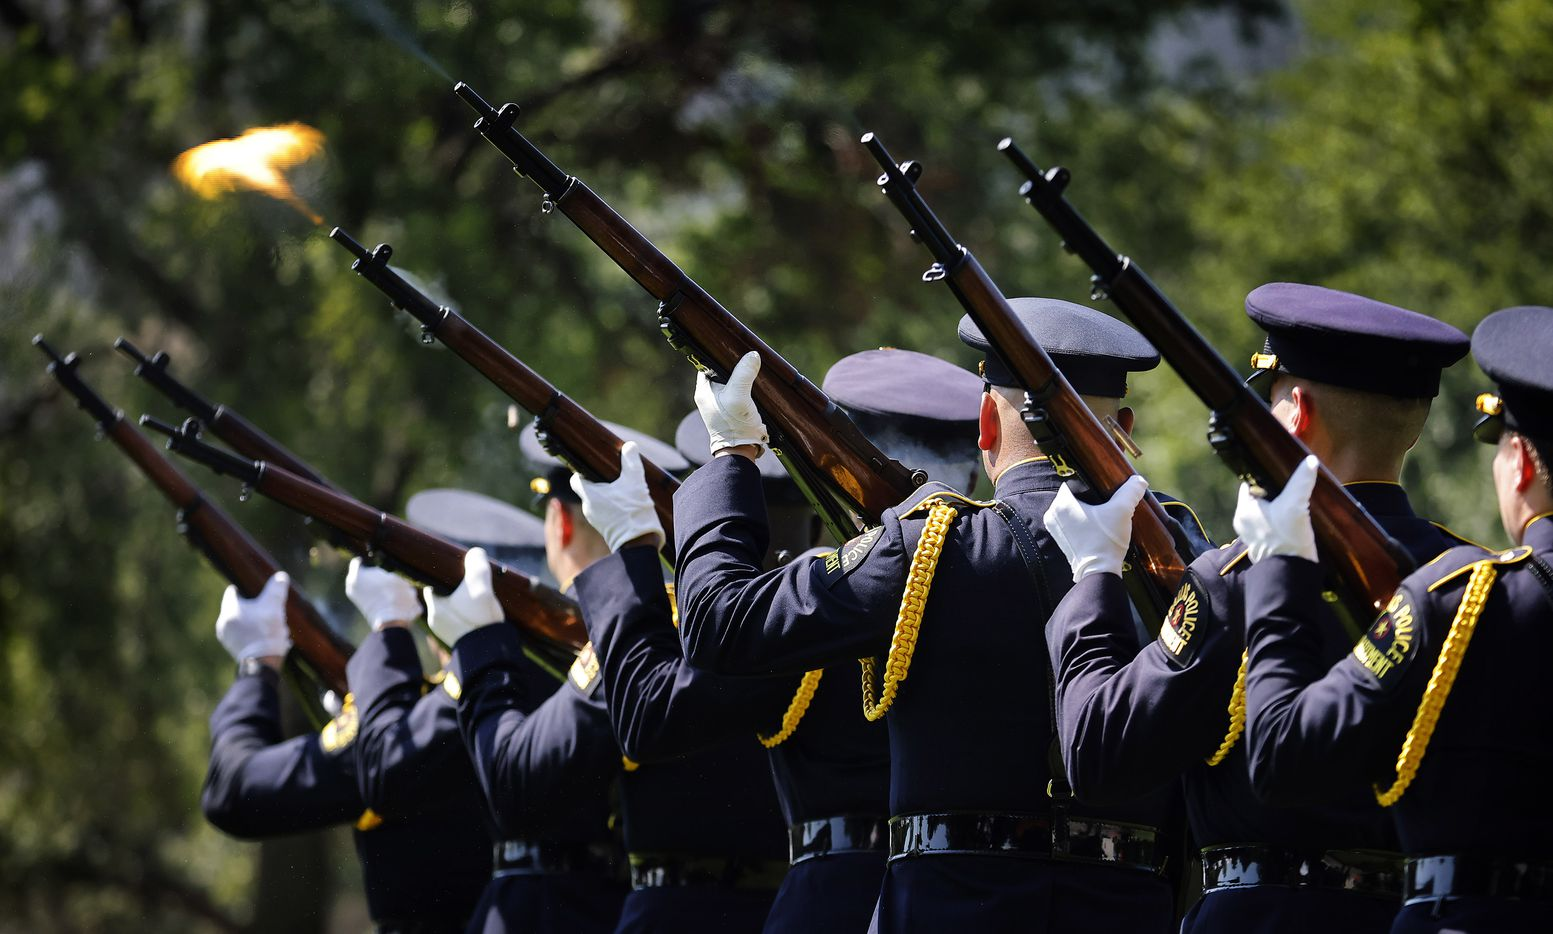 A 21-gun salute was given by the Dallas Police Honor Guard during the 2021 Police Memorial Day at the Dallas Police Memorial in downtown Dallas, Wednesday, July 7, 2021. It was the 5th anniversary of the July 7th ambush and special recognition was given to those officers who were killed. (Tom Fox/The Dallas Morning News)